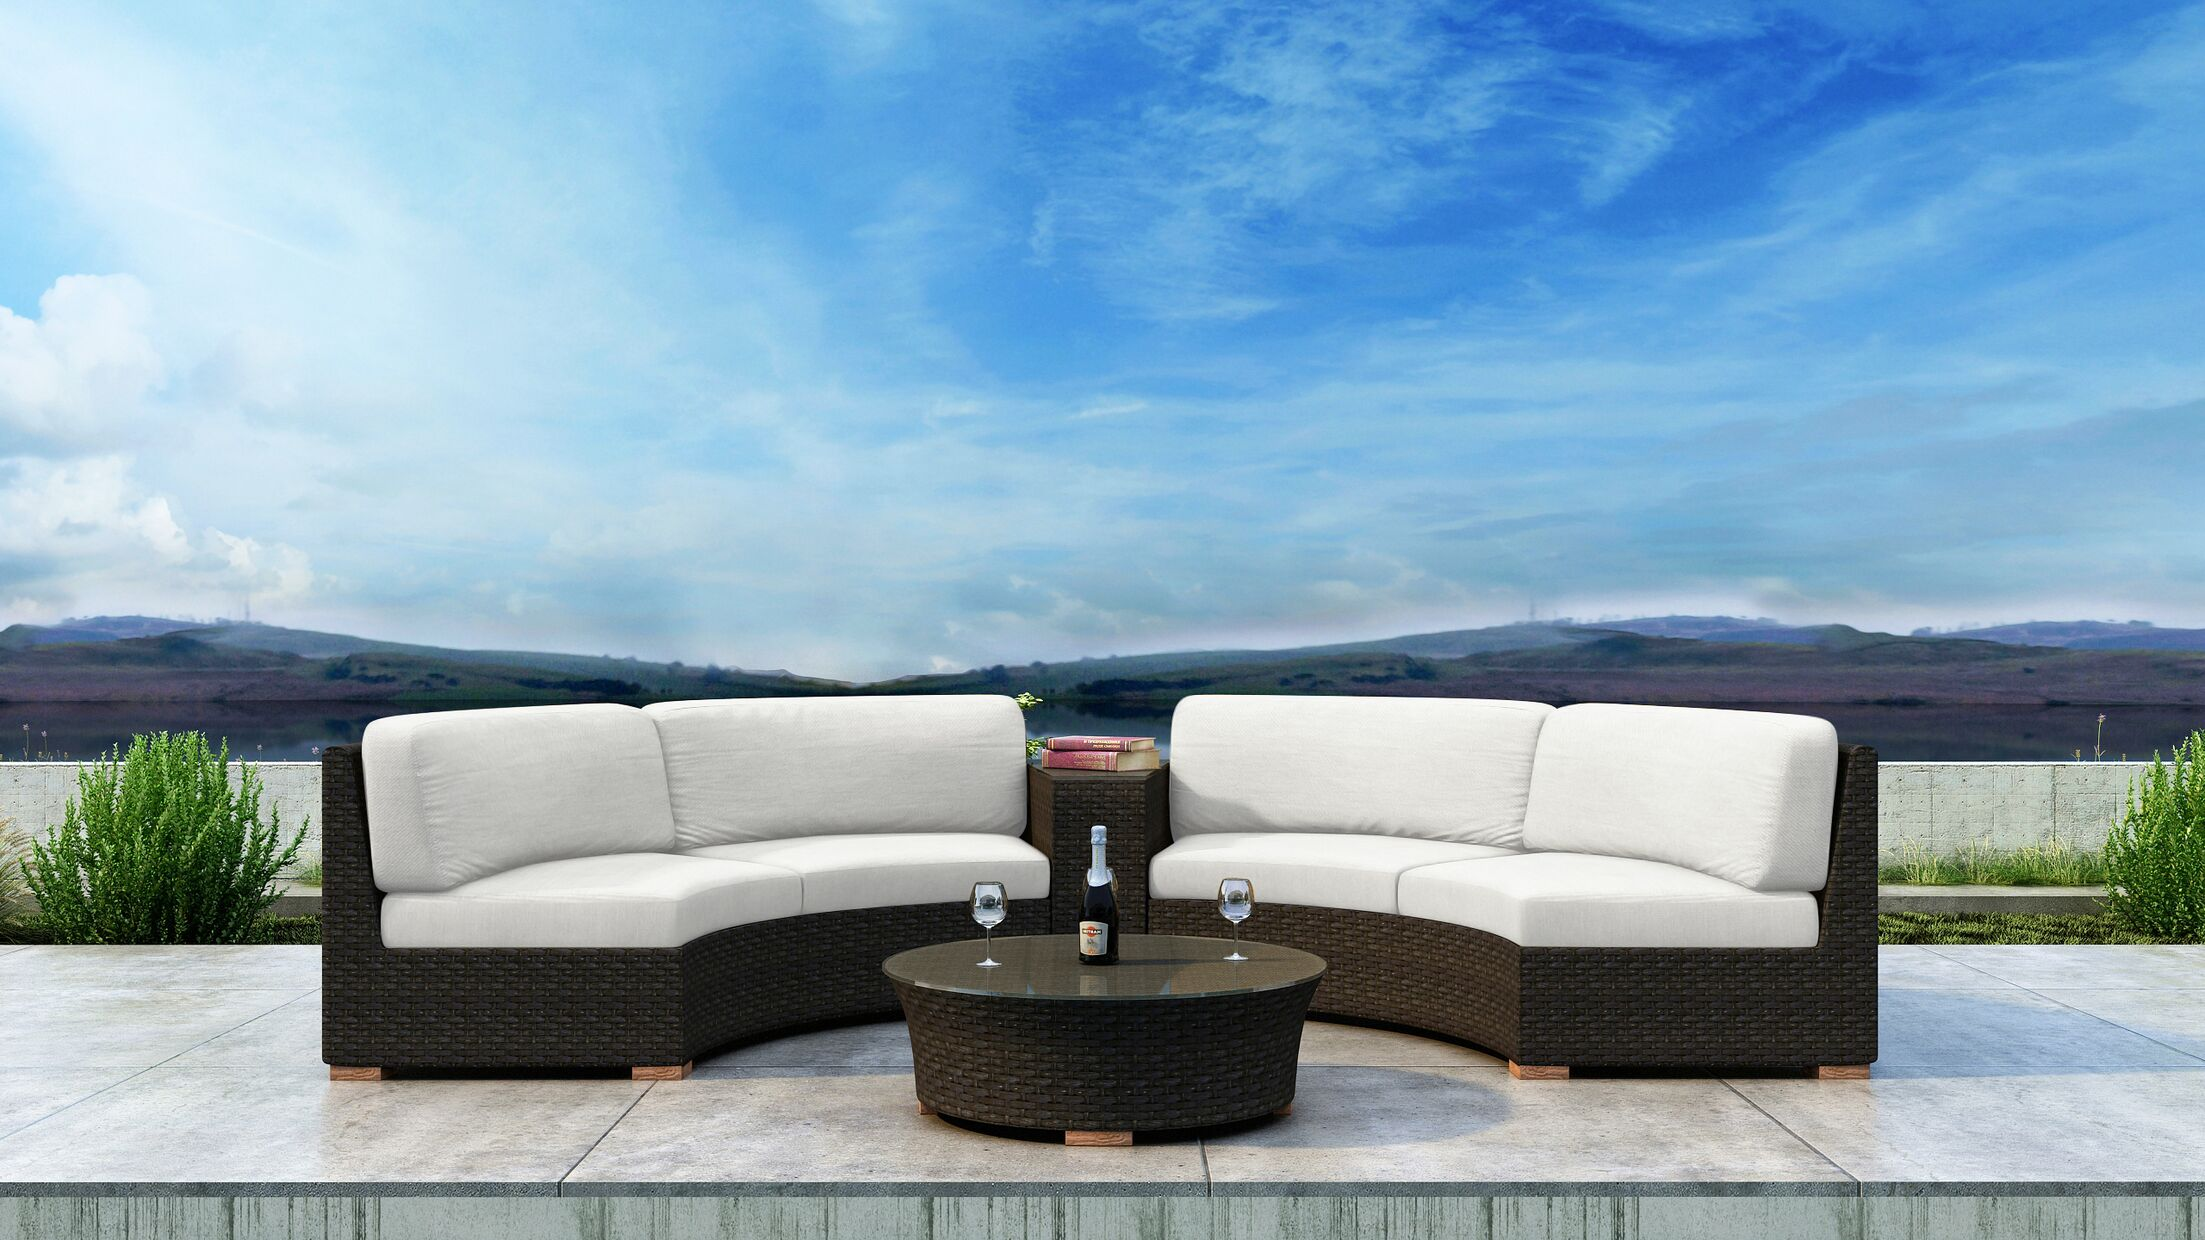 Glen Ellyn 4 Piece Sectional Set with Sunbrella Cushion Cushion Color: Canvas Natural